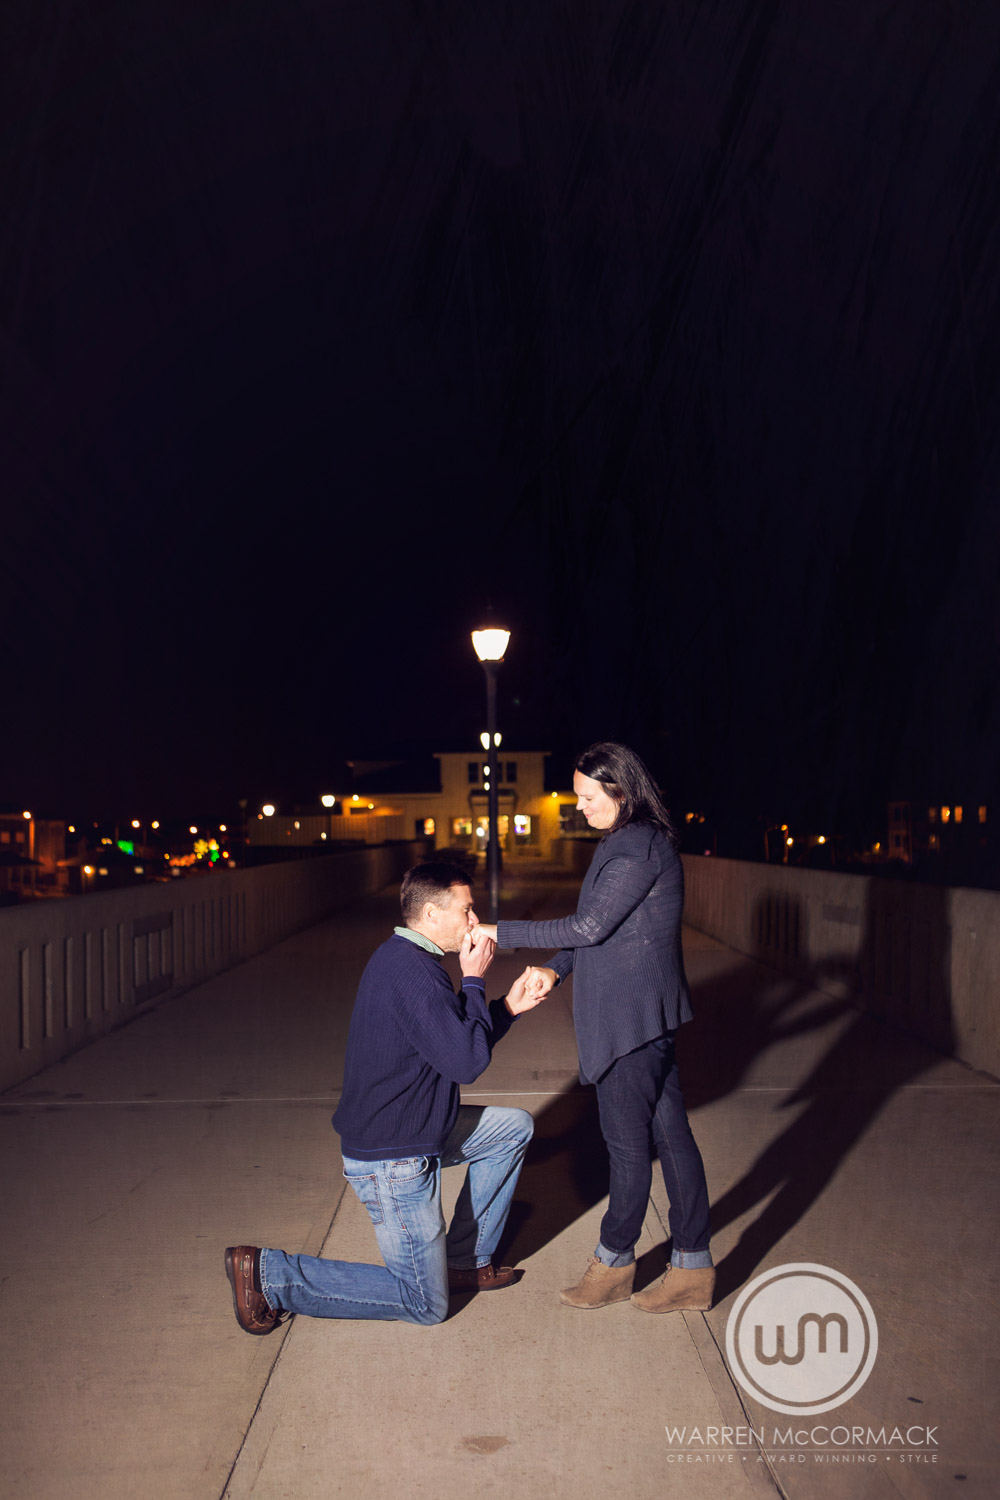 wilmington_engagement_photographer_0021.jpg